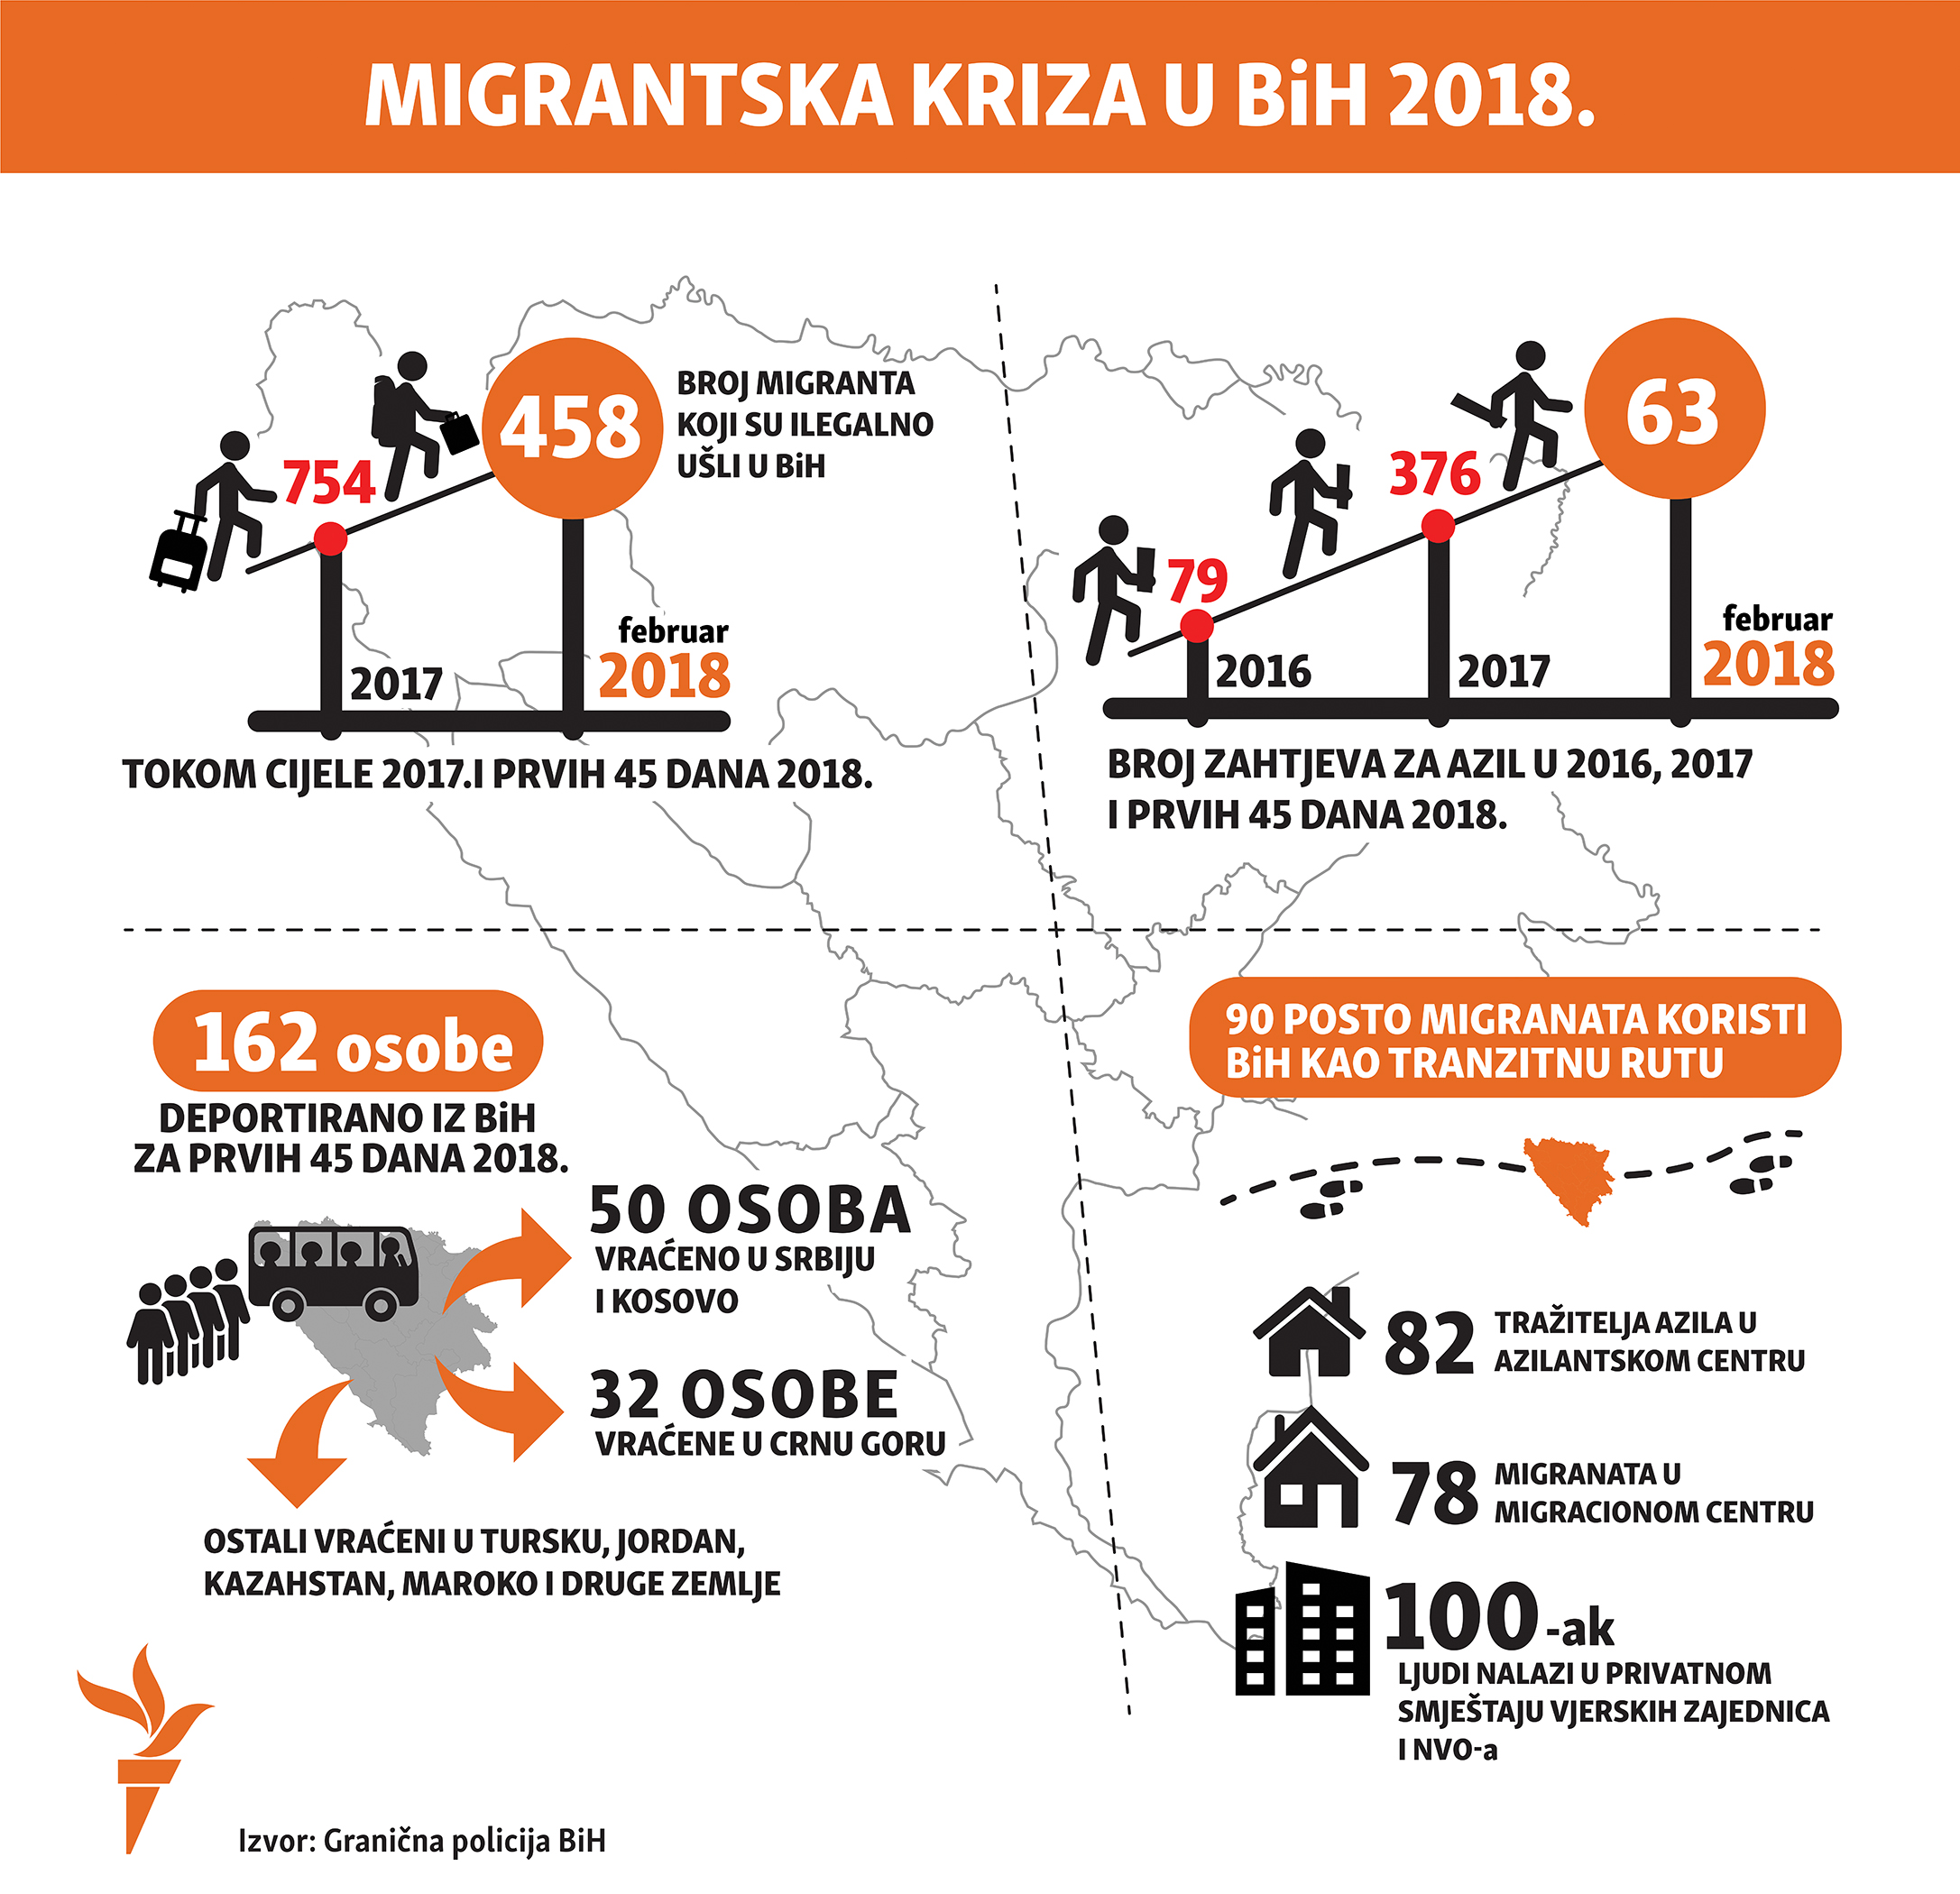 migrants in Bosnia in 2018